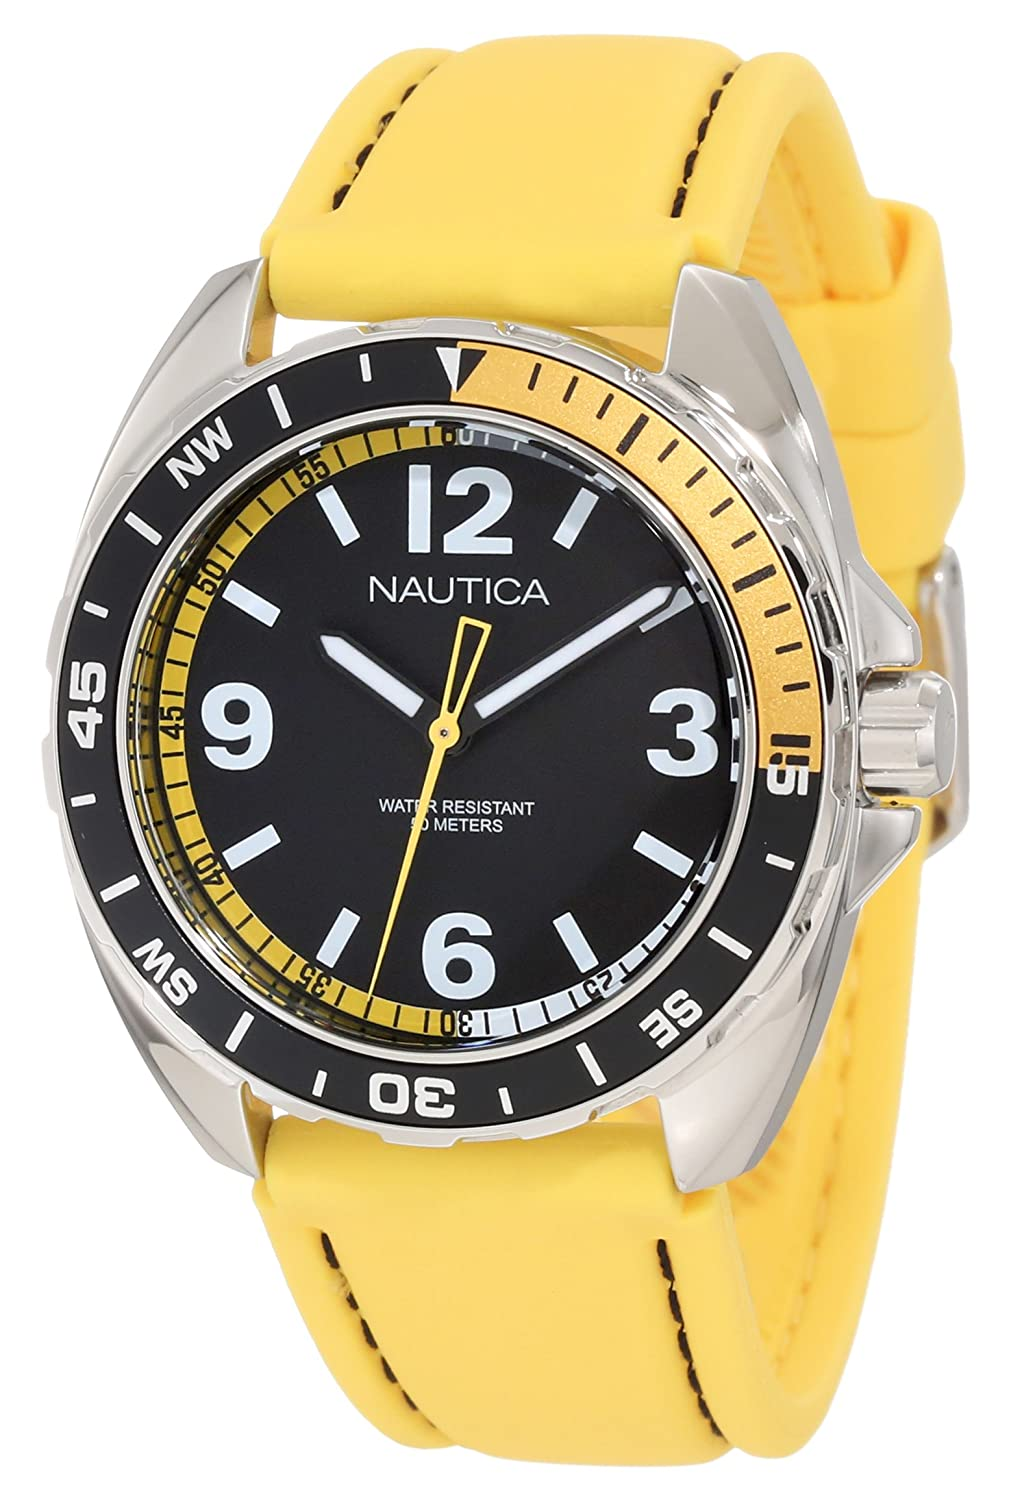 Nautica Men's N09923G Sport Classic Analog Enamel Bezel Watch Set